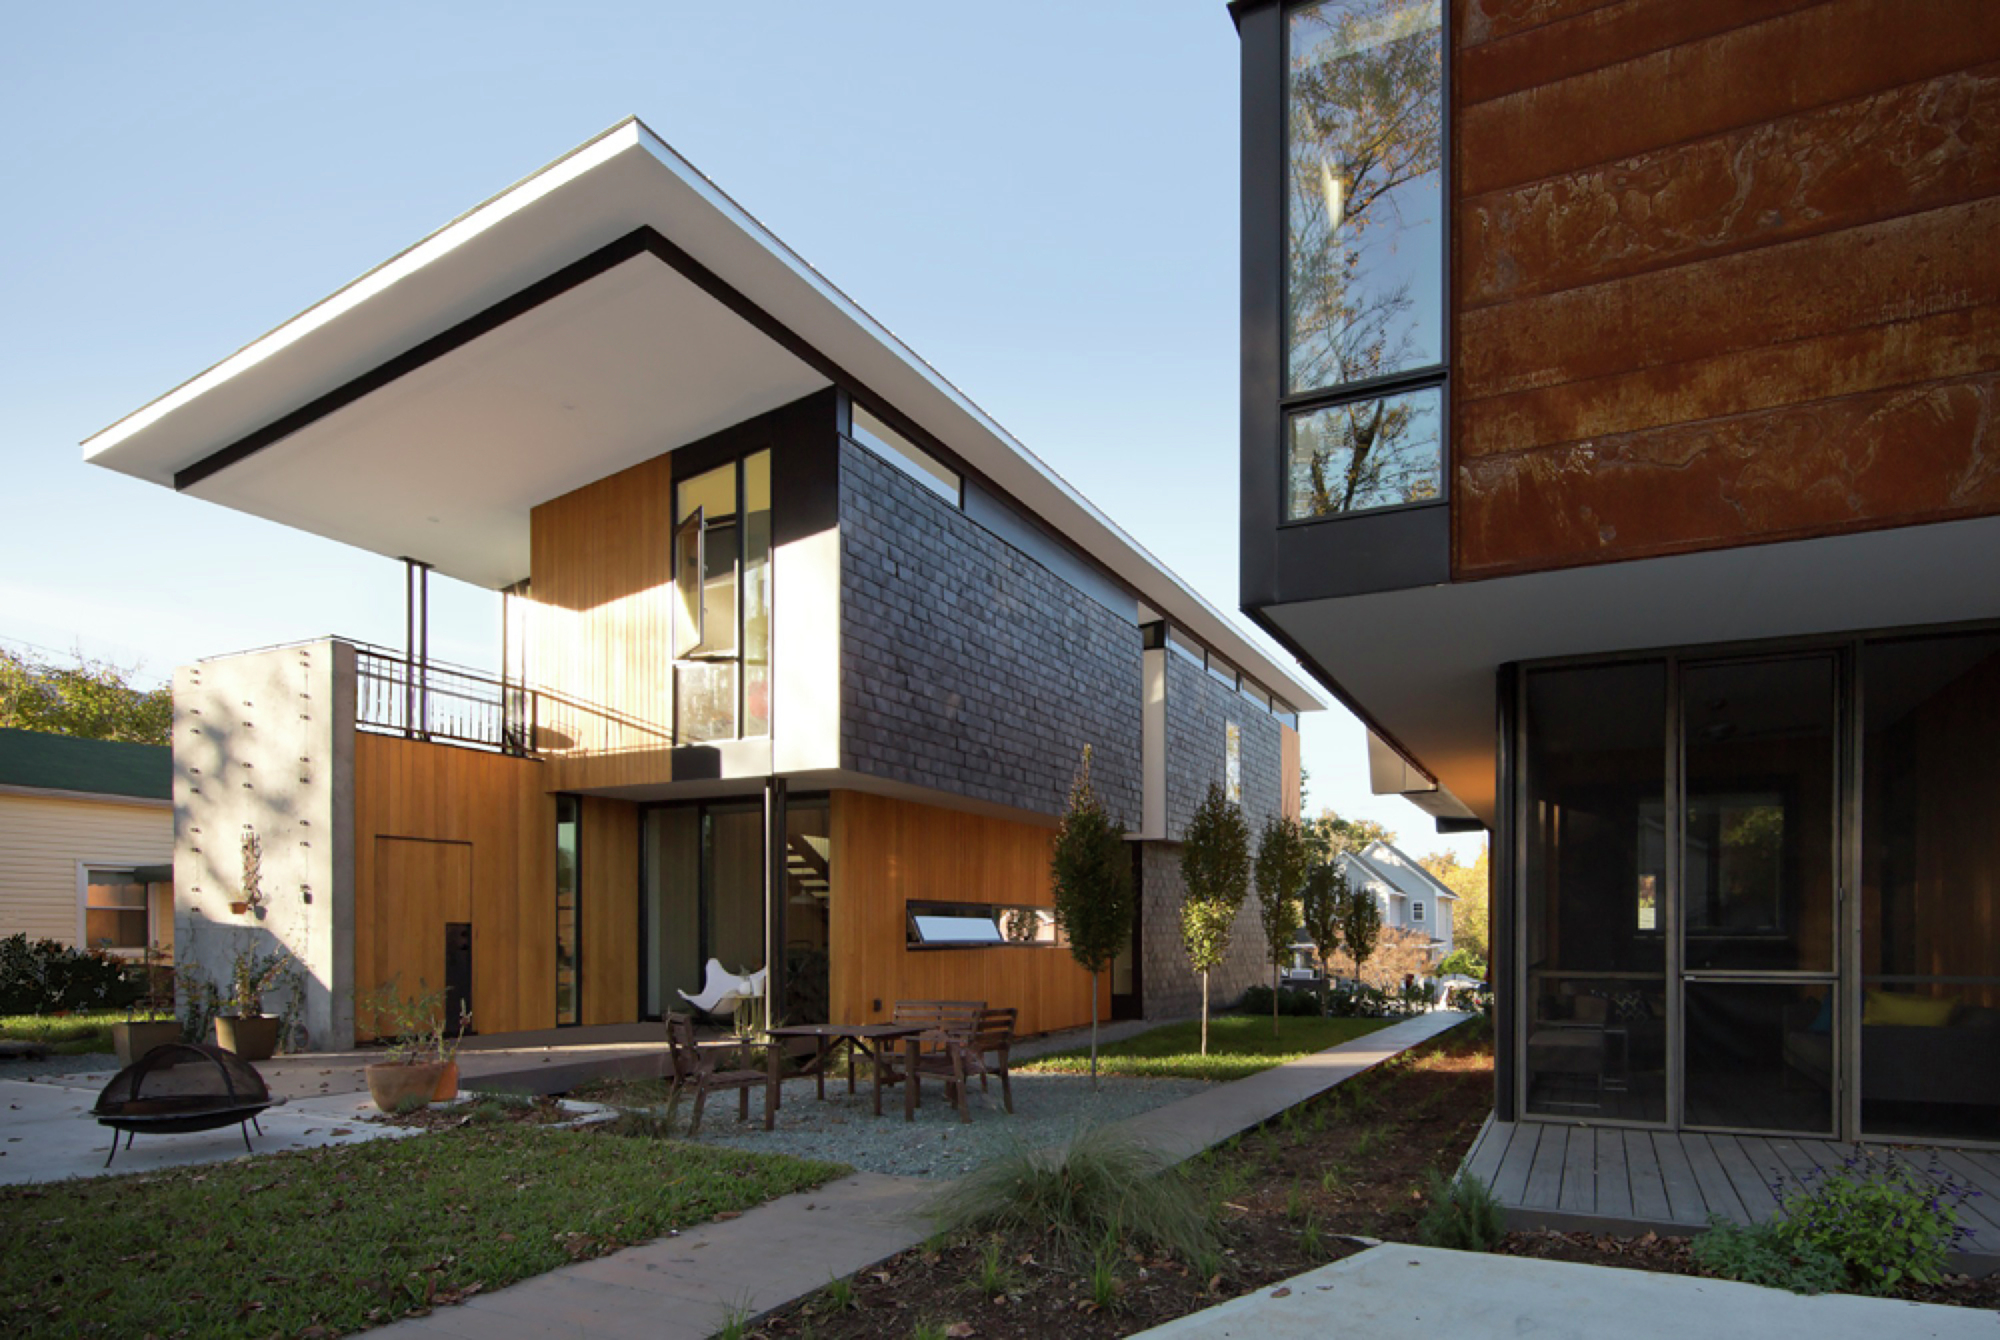 Compact Modern Duo / The Raleigh Architecture Co.